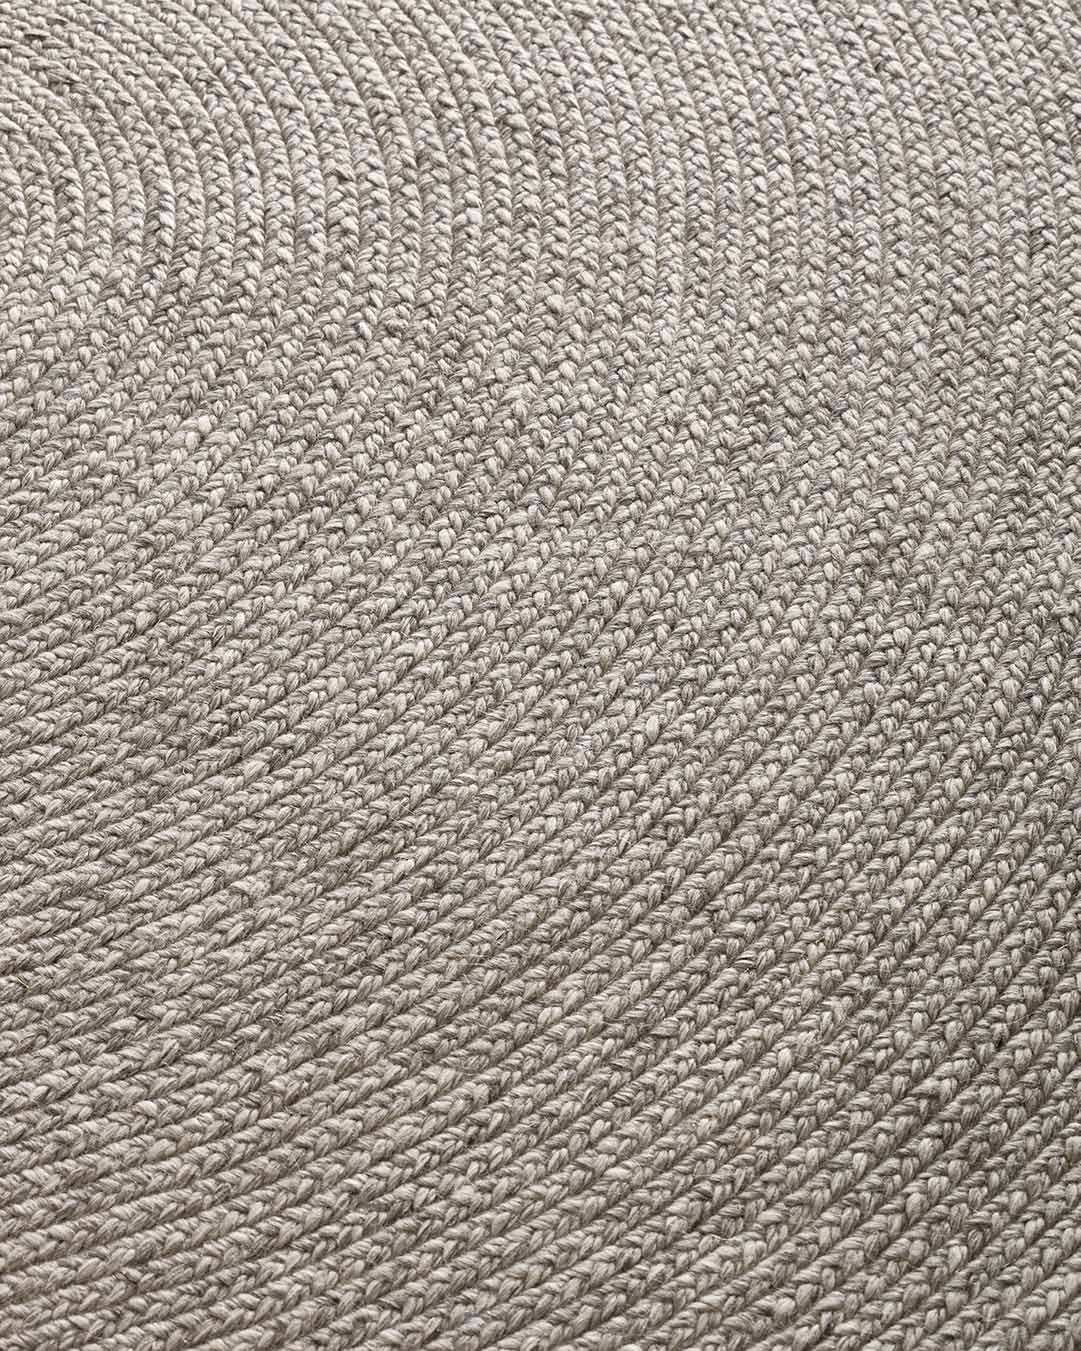 Close up view of Glenmore round rug in silver colour